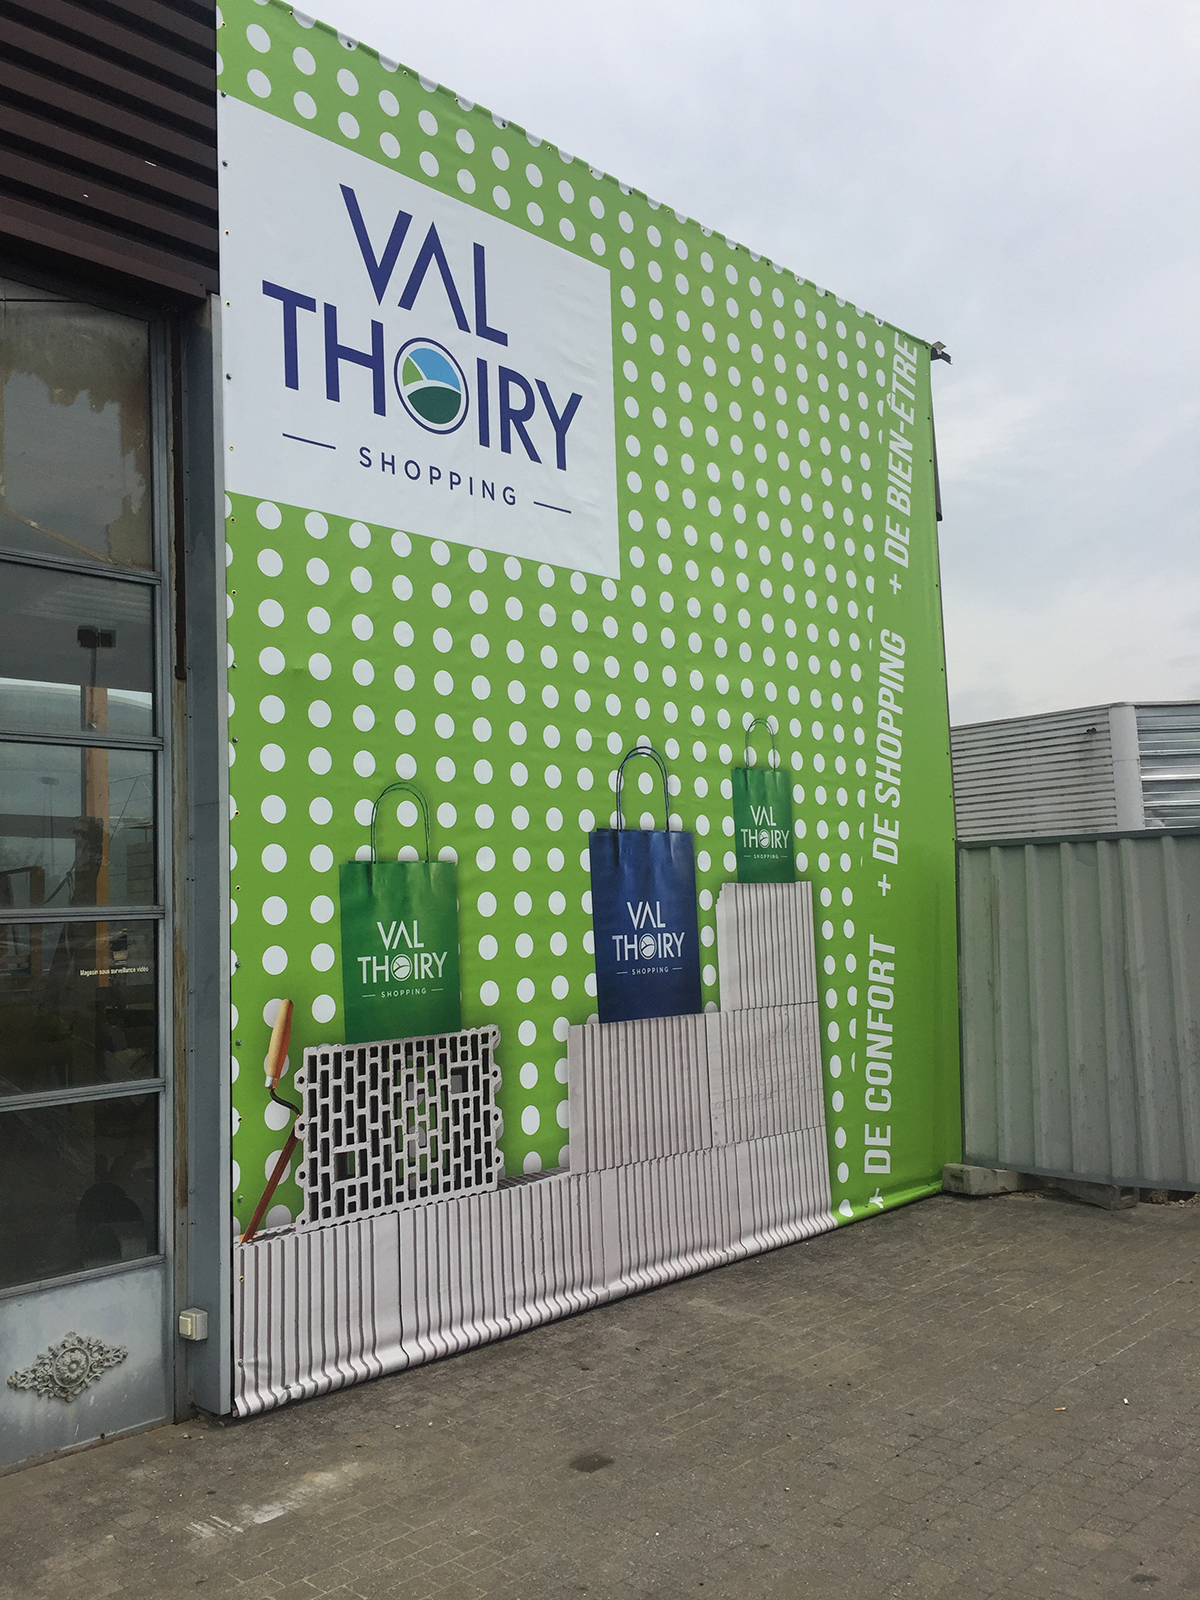 Centre commercial Valthoiry